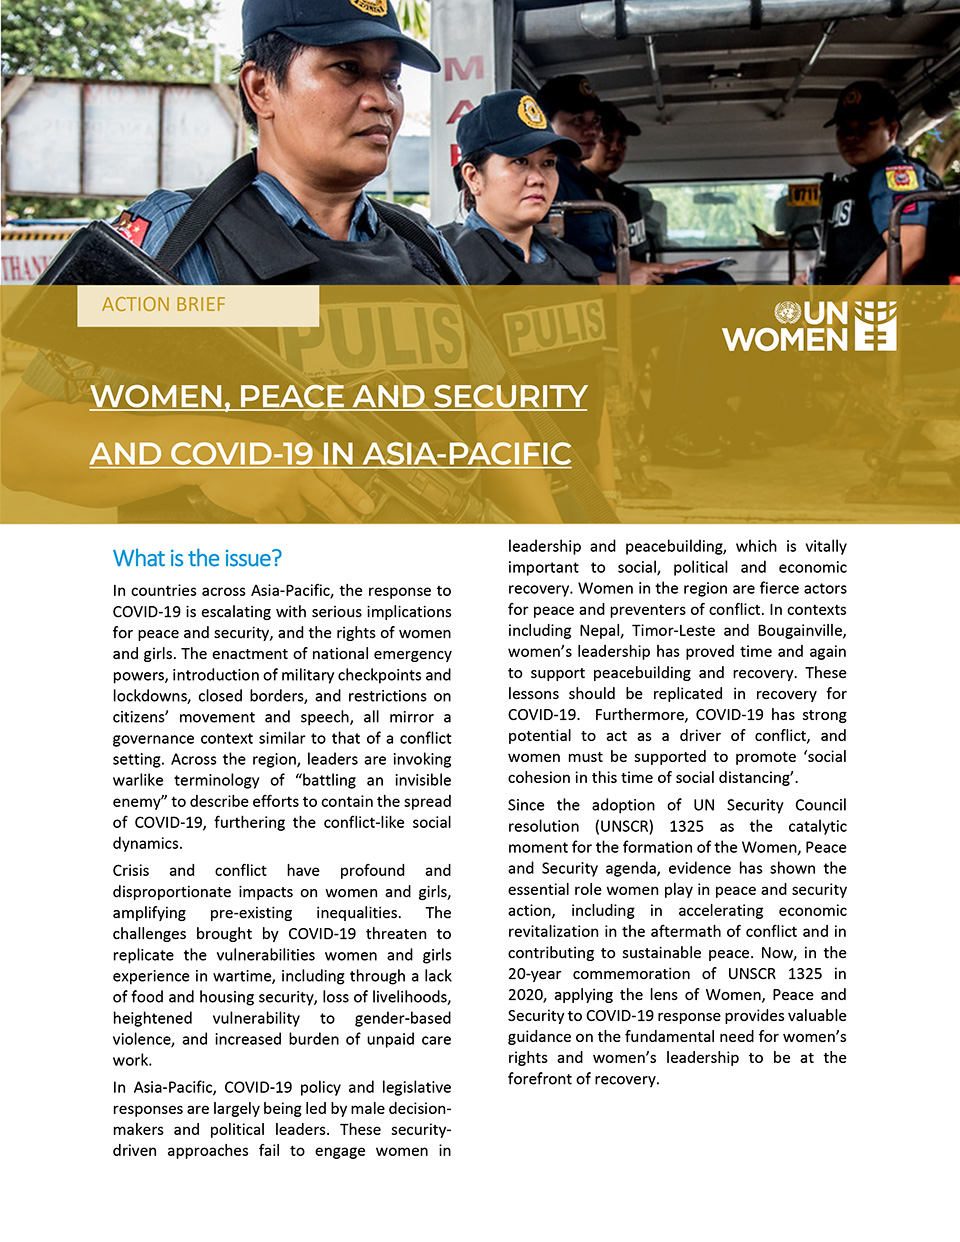 Women Peace and Security, and Covid-19 In Asia-Pacific